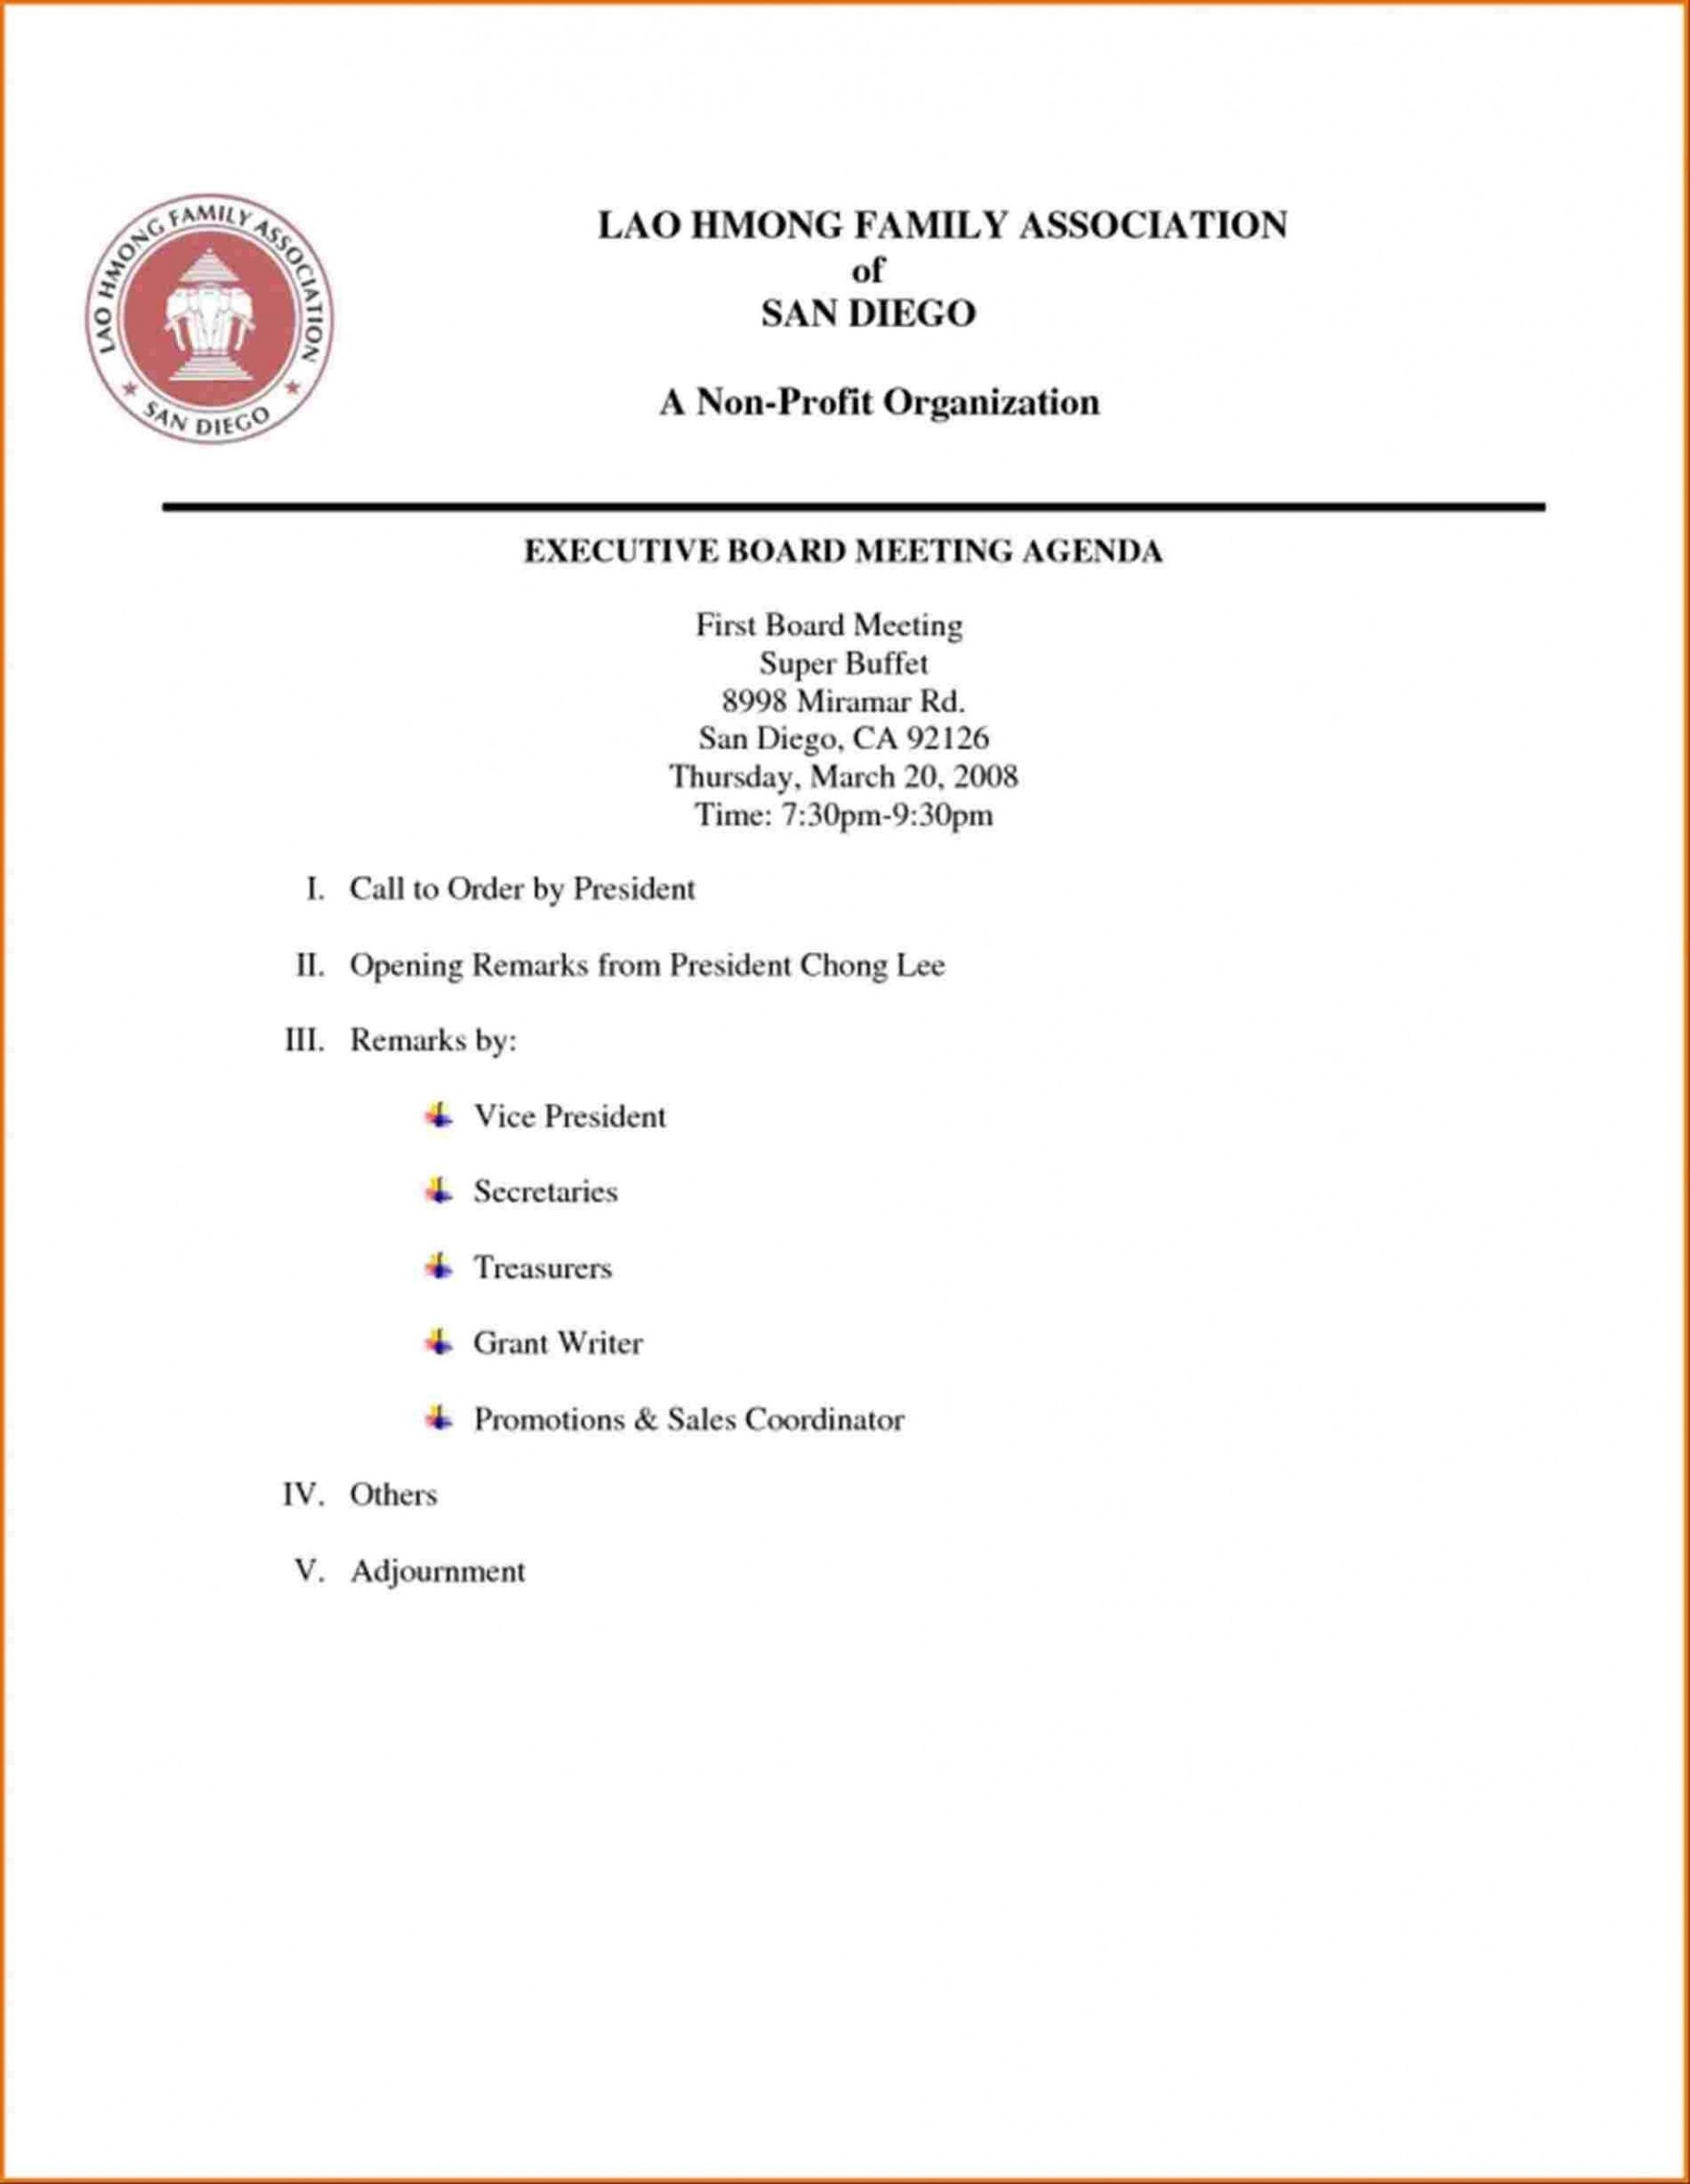 Before the meeting, create a space for suggested meeting topics. First Board Meeting Agenda Template